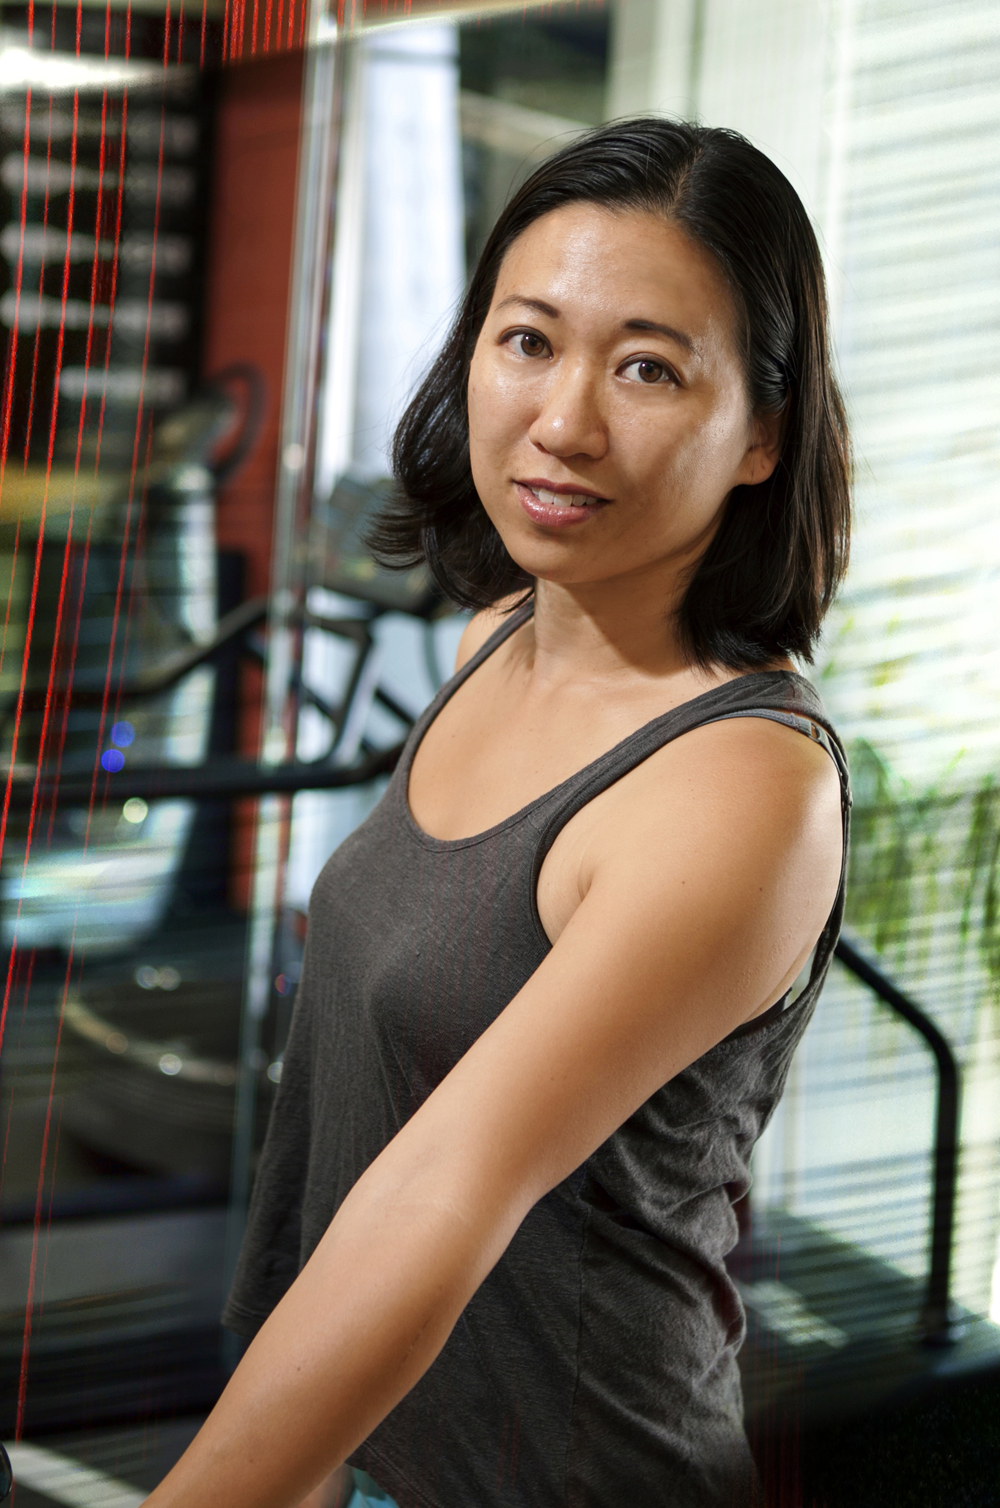 "Jennifer Cheng teaches fitness with whole-body movement analysis, designing personalized workouts from Pilates, yoga, dance, and physical therapy rehab exercises. She has received training and mentorship from rehab specialists in Europe and New York City.  With experience training prenatal and postpartum moms, athletes (including triathletes, tennis players, marathon runners, cyclists, and professional dancers), and seniors with severe injuries, Jennifer enjoys teaching fitness with creative imagery and laughter. Eager to apply exercises on the PowerPlate to conquer health challenges, Jennifer has created the wellness program ""Strength After Cancer"" to help breast cancer survivors reduce lymphedema risks and all cancer survivors gain strength after chemo and radiation treatments. She has designed exercises on the PowerPlate to help students overcome balance difficulties or strength plateaus.  Jennifer is also a Wellness+Nutrition Consultant trained by leading doctors as well as culinary experts and food writers. She provides wellness consulting to doctors' offices and a variety of clients, from athletes to cancer survivors. Jennifer loves food and enjoys teaching her clients with science and mind-body-spirit education to help them live better longer."